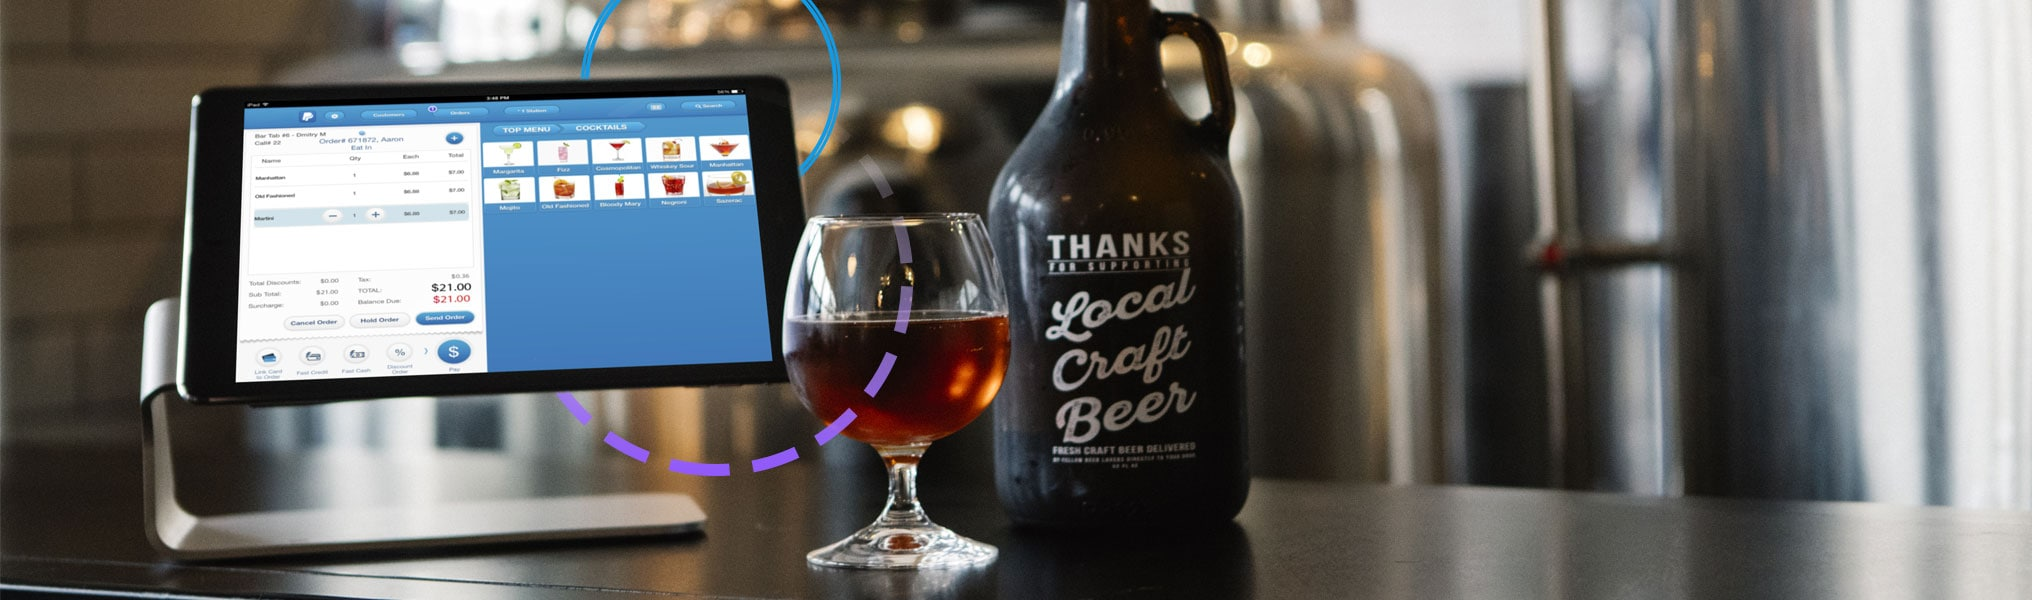 Revel Systems iPad on C-Stand in craft beer establishment with growler and snifter of beer